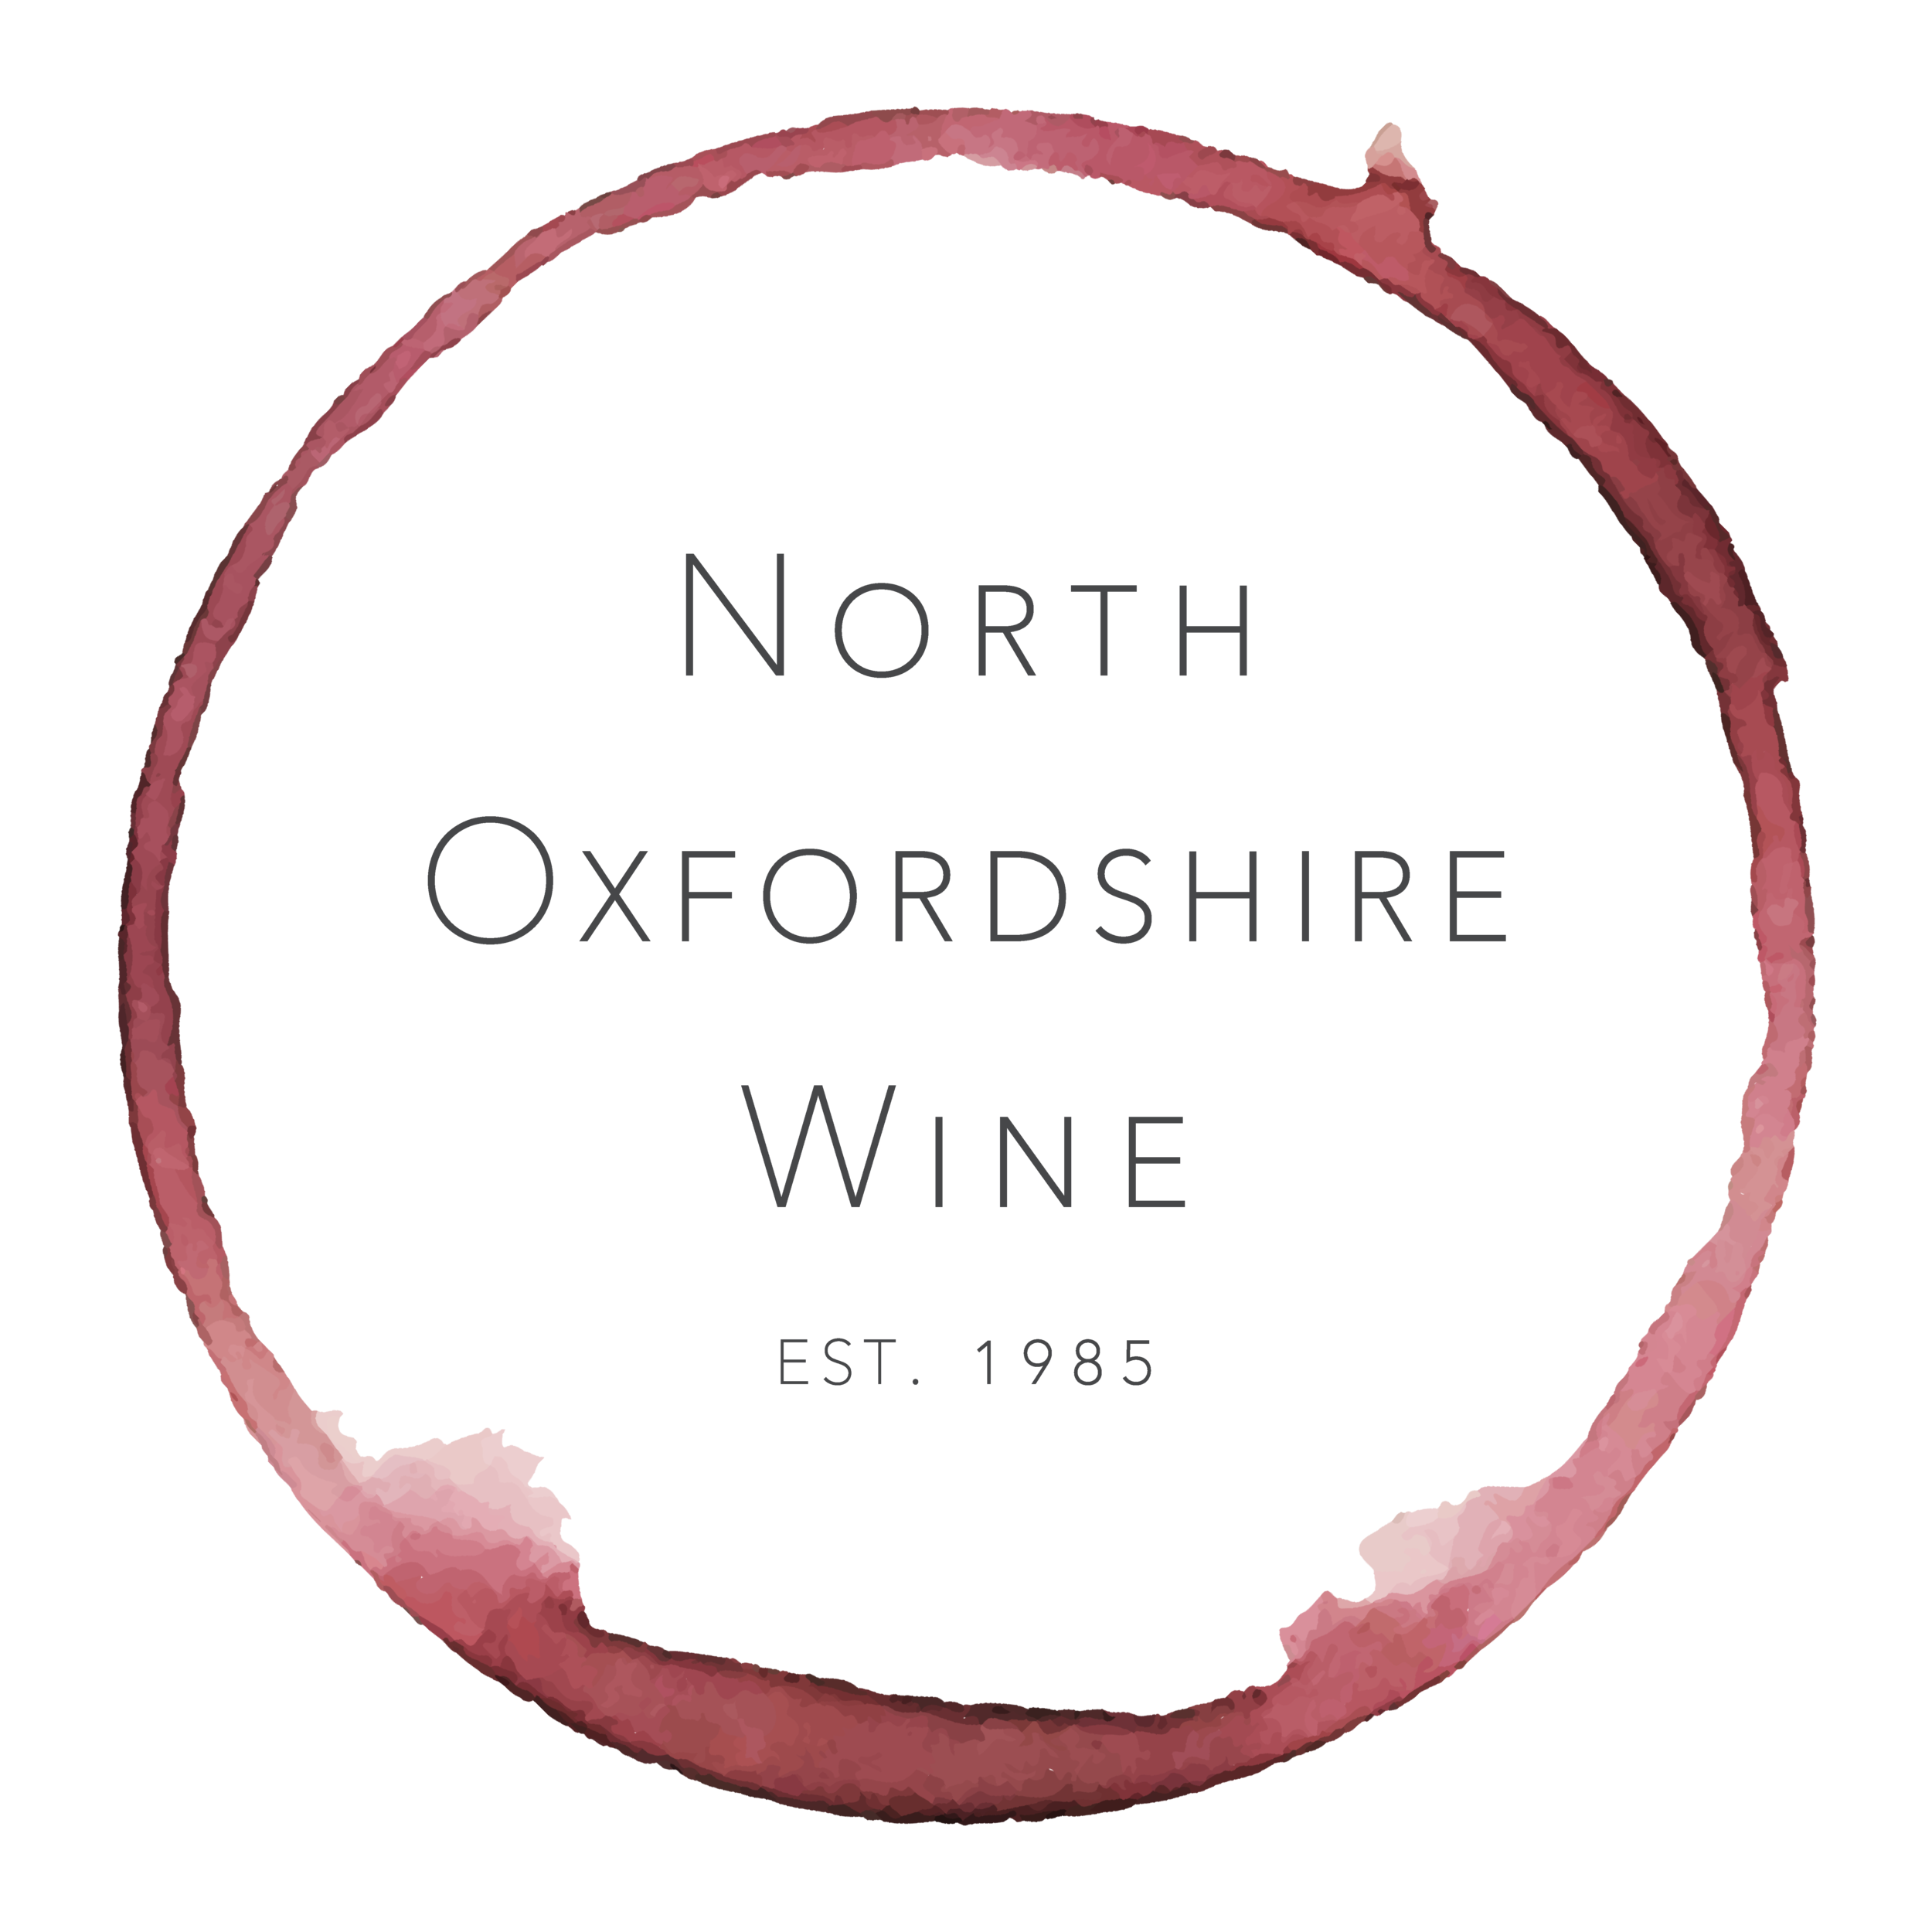 Join the Team - We are always interested in hearing from anyone with sales experience and a real passion for wine. The role would be primarily focused on winning new on trade business and would suit someone who would like to work part time.Interested? Please fill in the form below and we will get back to you as soon as possible.